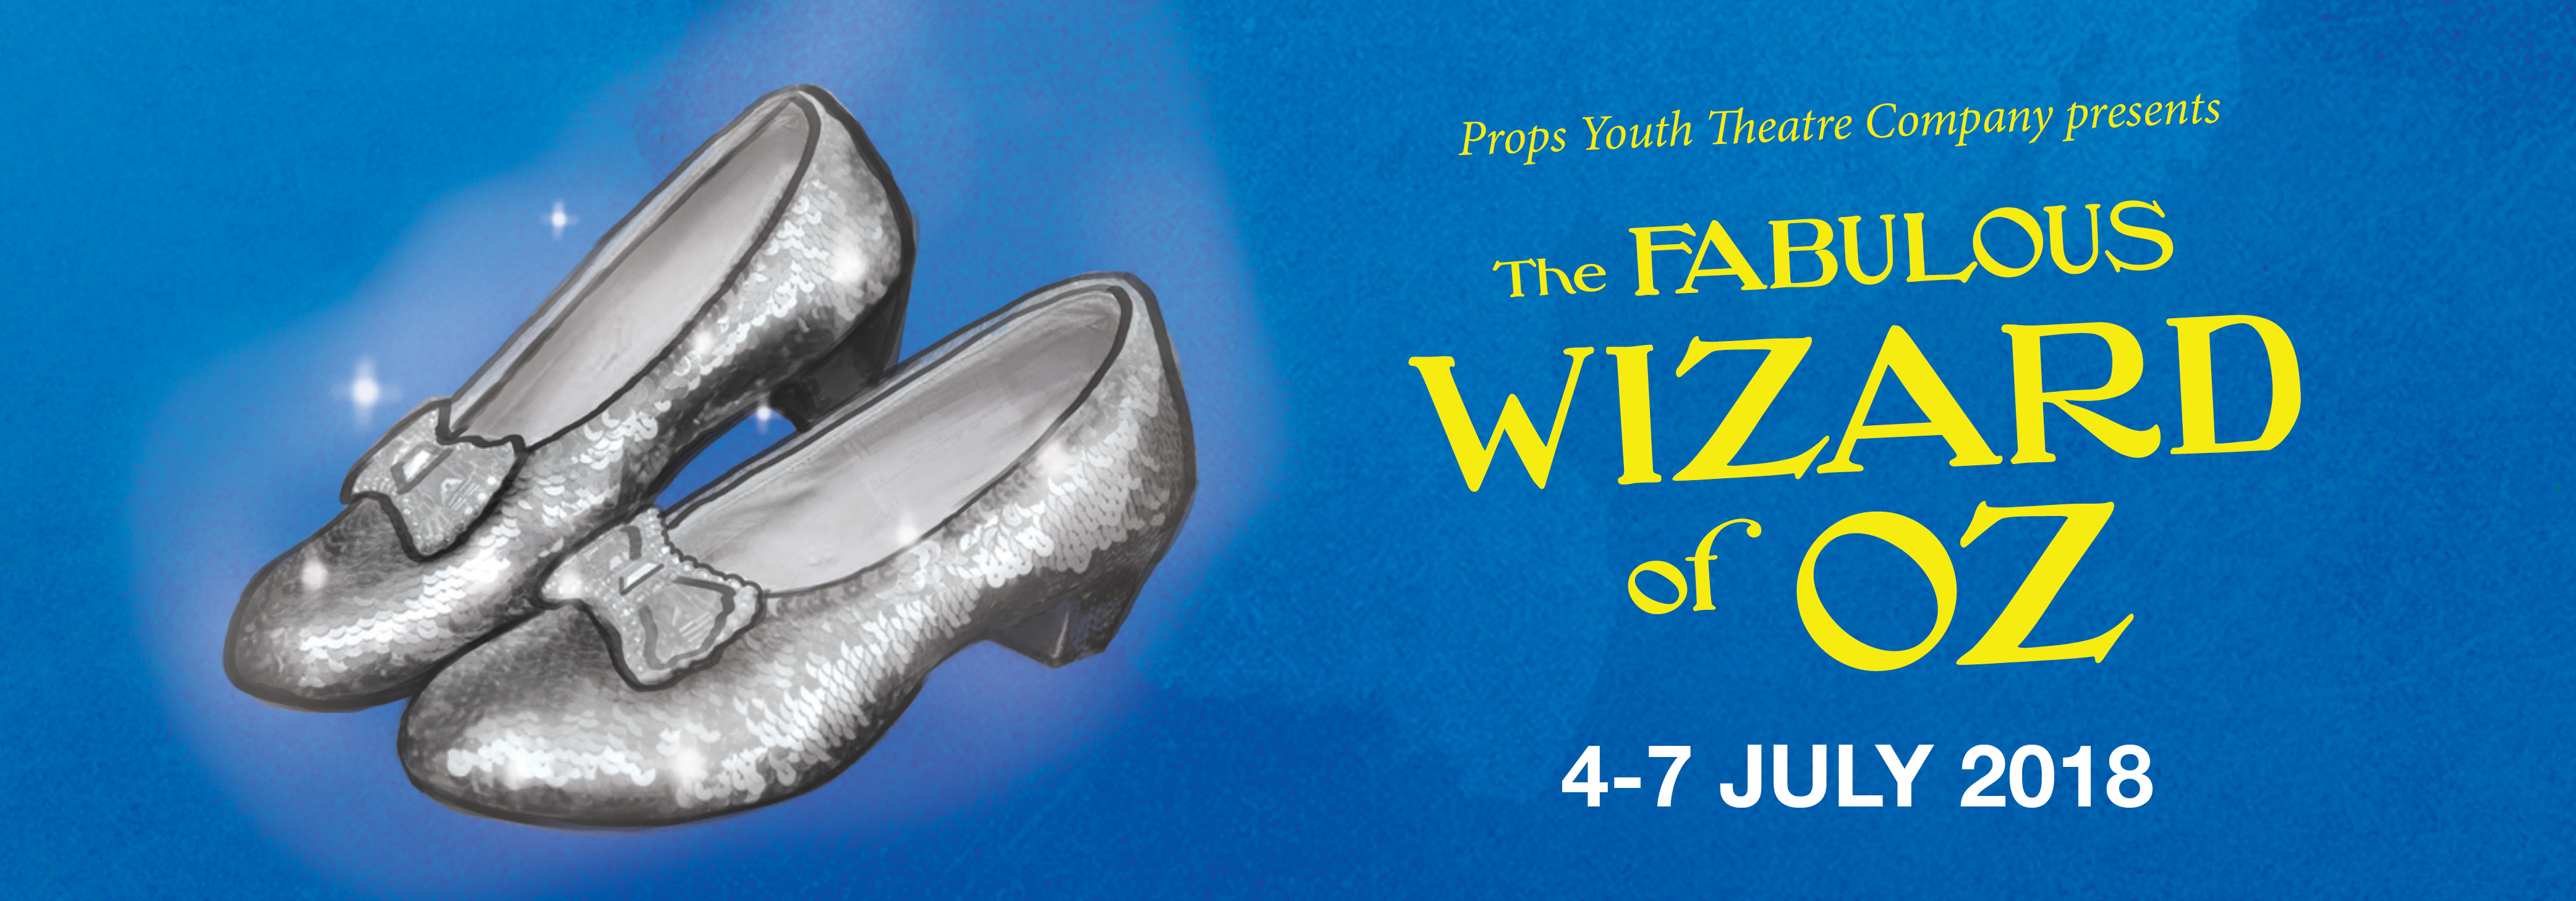 Full Throttle Theatre Company presents: The Fabulous Wizard of Oz - 4-7 July 2018